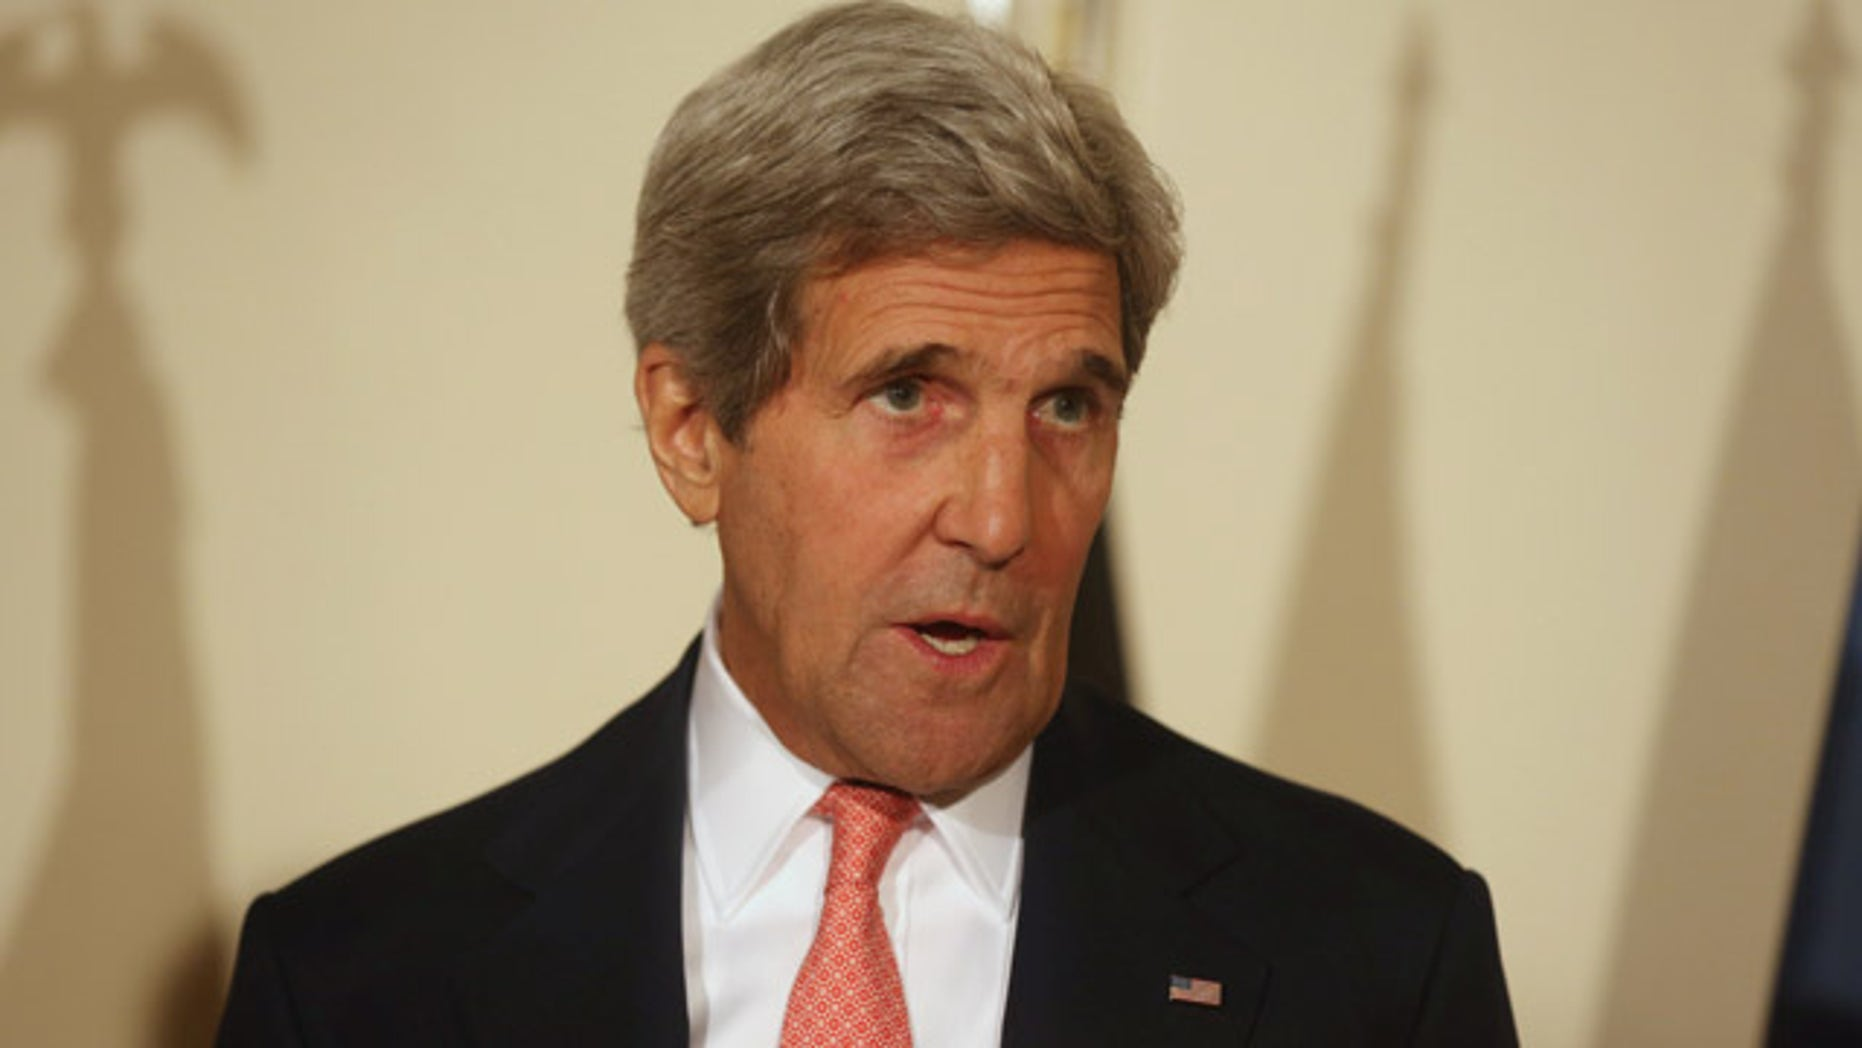 July 12, 2014: U.S. Secretary of State John Kerry speaks during a joint press conference in Kabul, Afghanistan (AP Photo/Rahmat Gul)